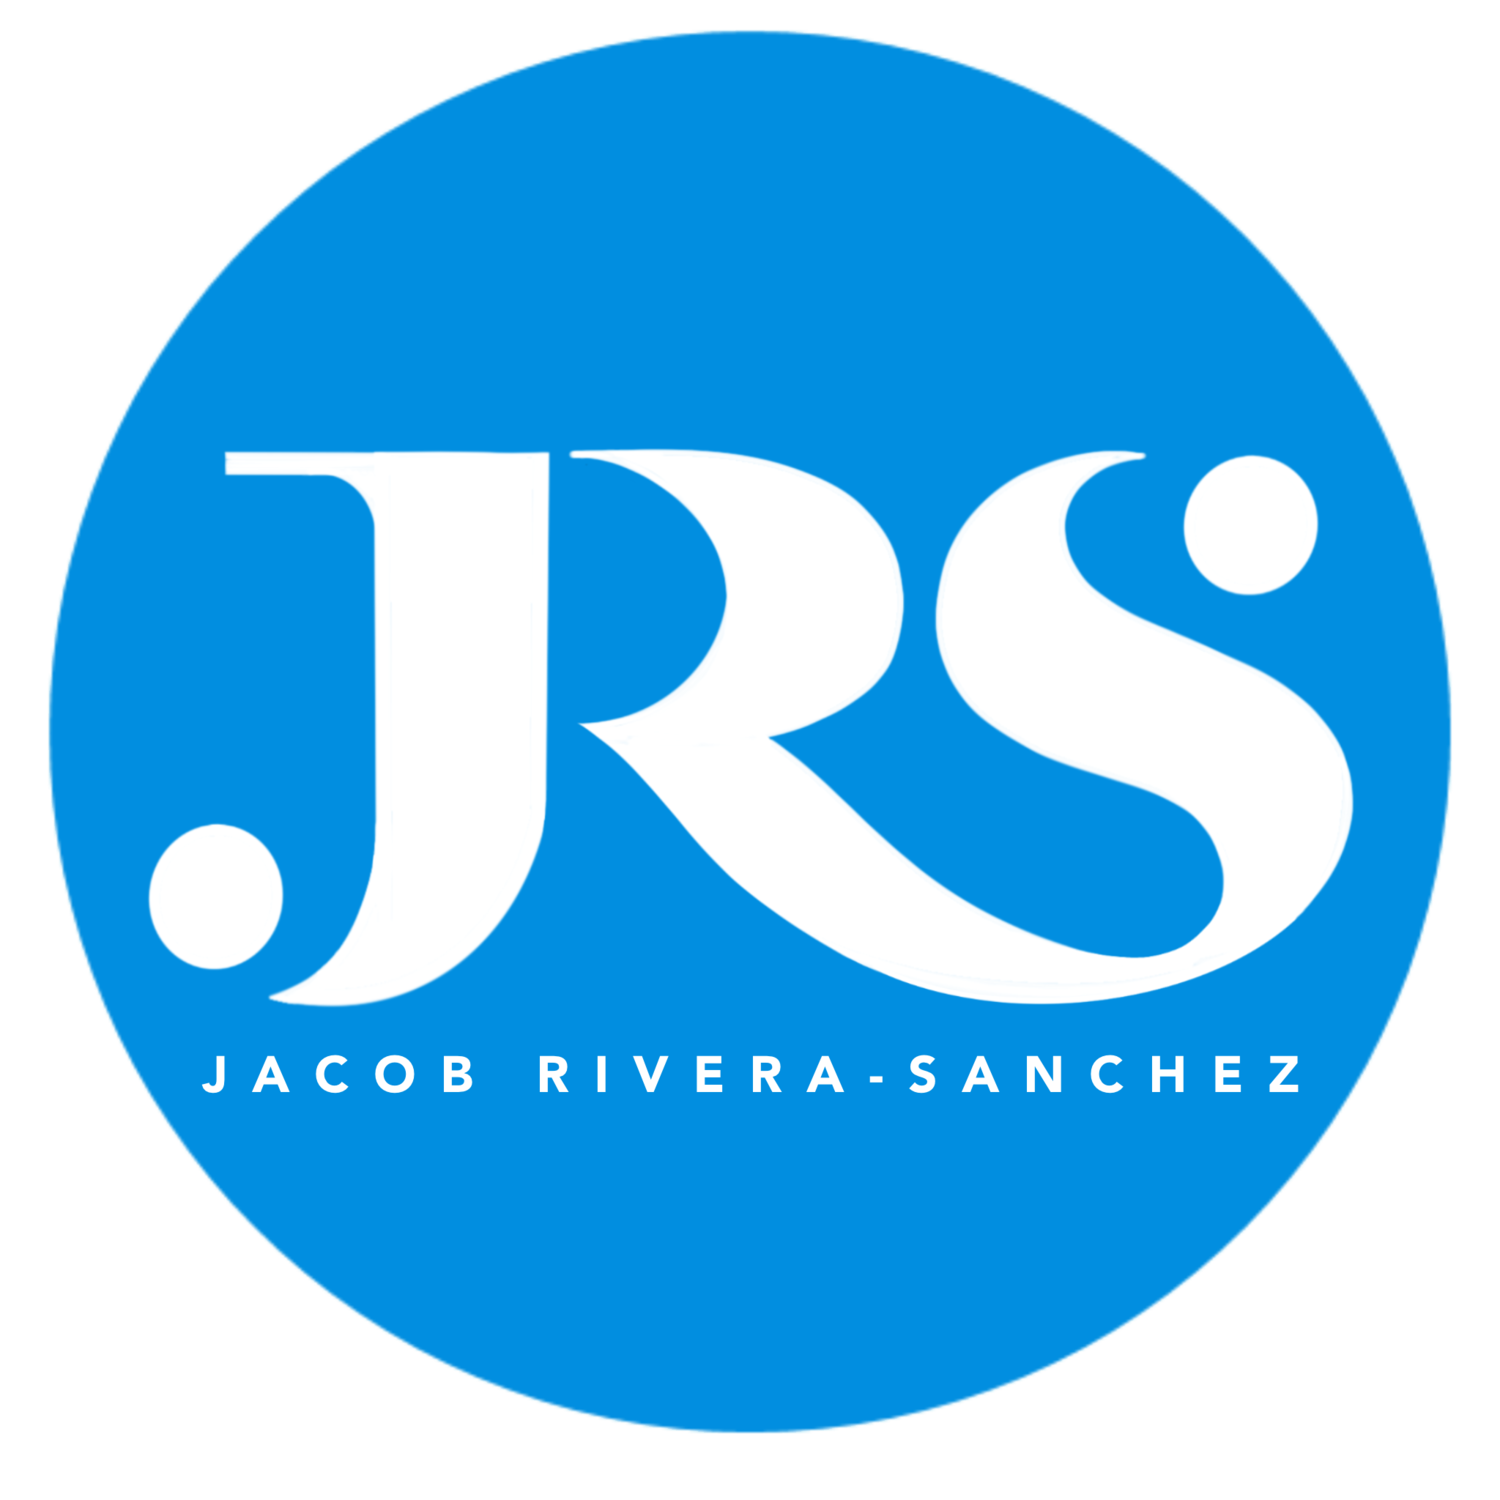 JACOB RIVERA-SANCHEZ